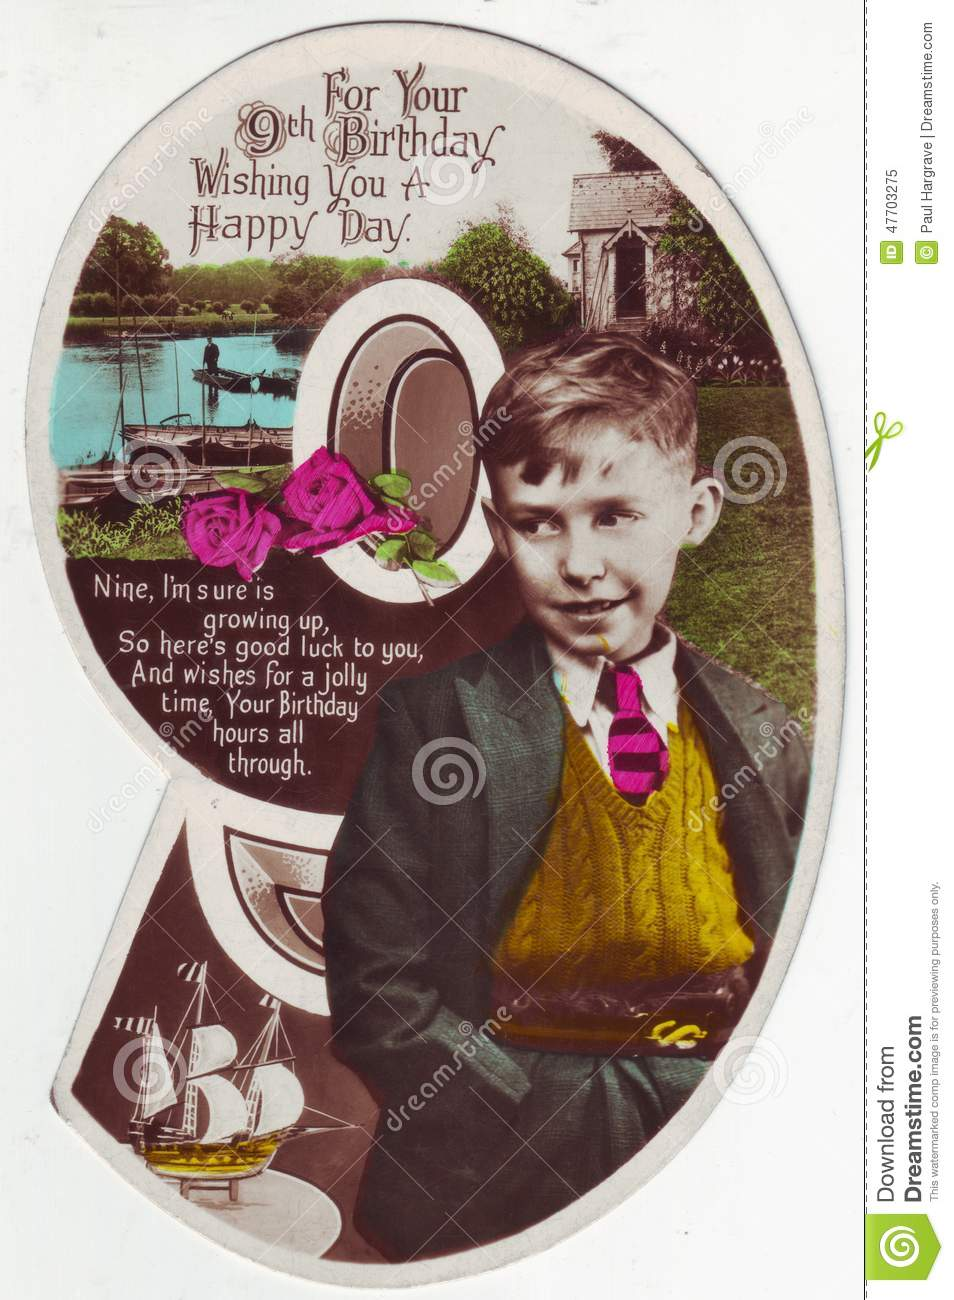 Antique Postcard Greeting Card 9 Years Old Boy Editorial Happy Birthday Wishes For A 9 Year Boy